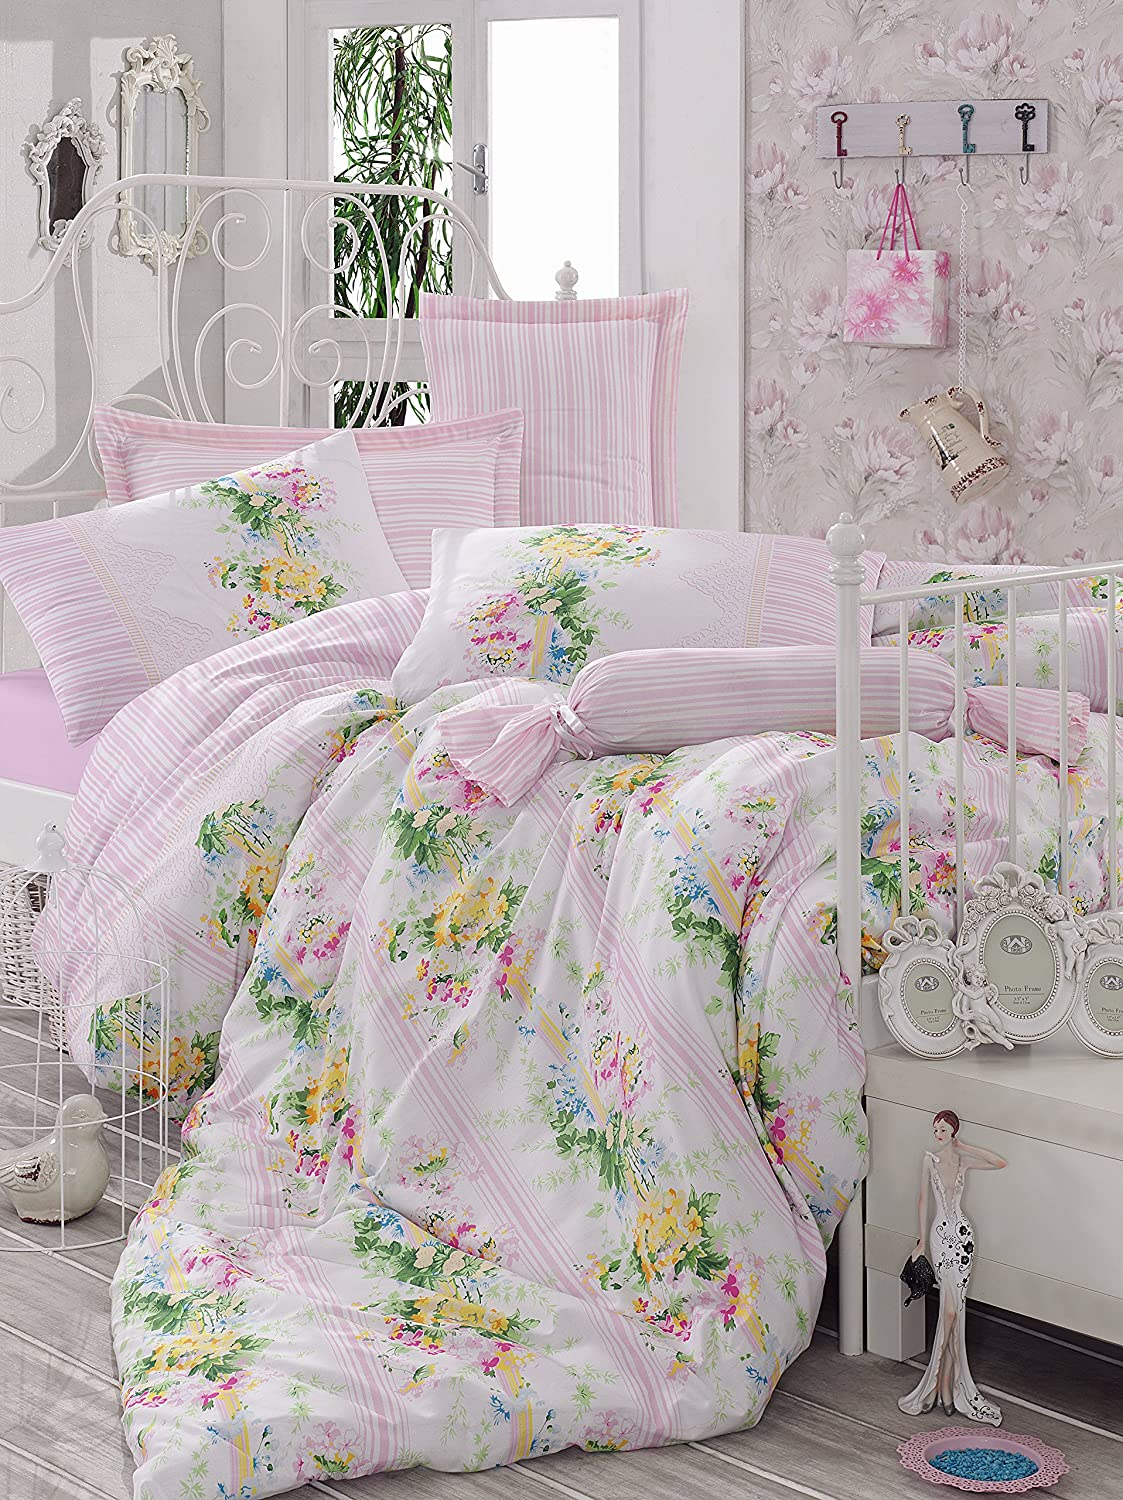 Sarah - High Quality Ranforce 100% Cotton Duvet Cover Set